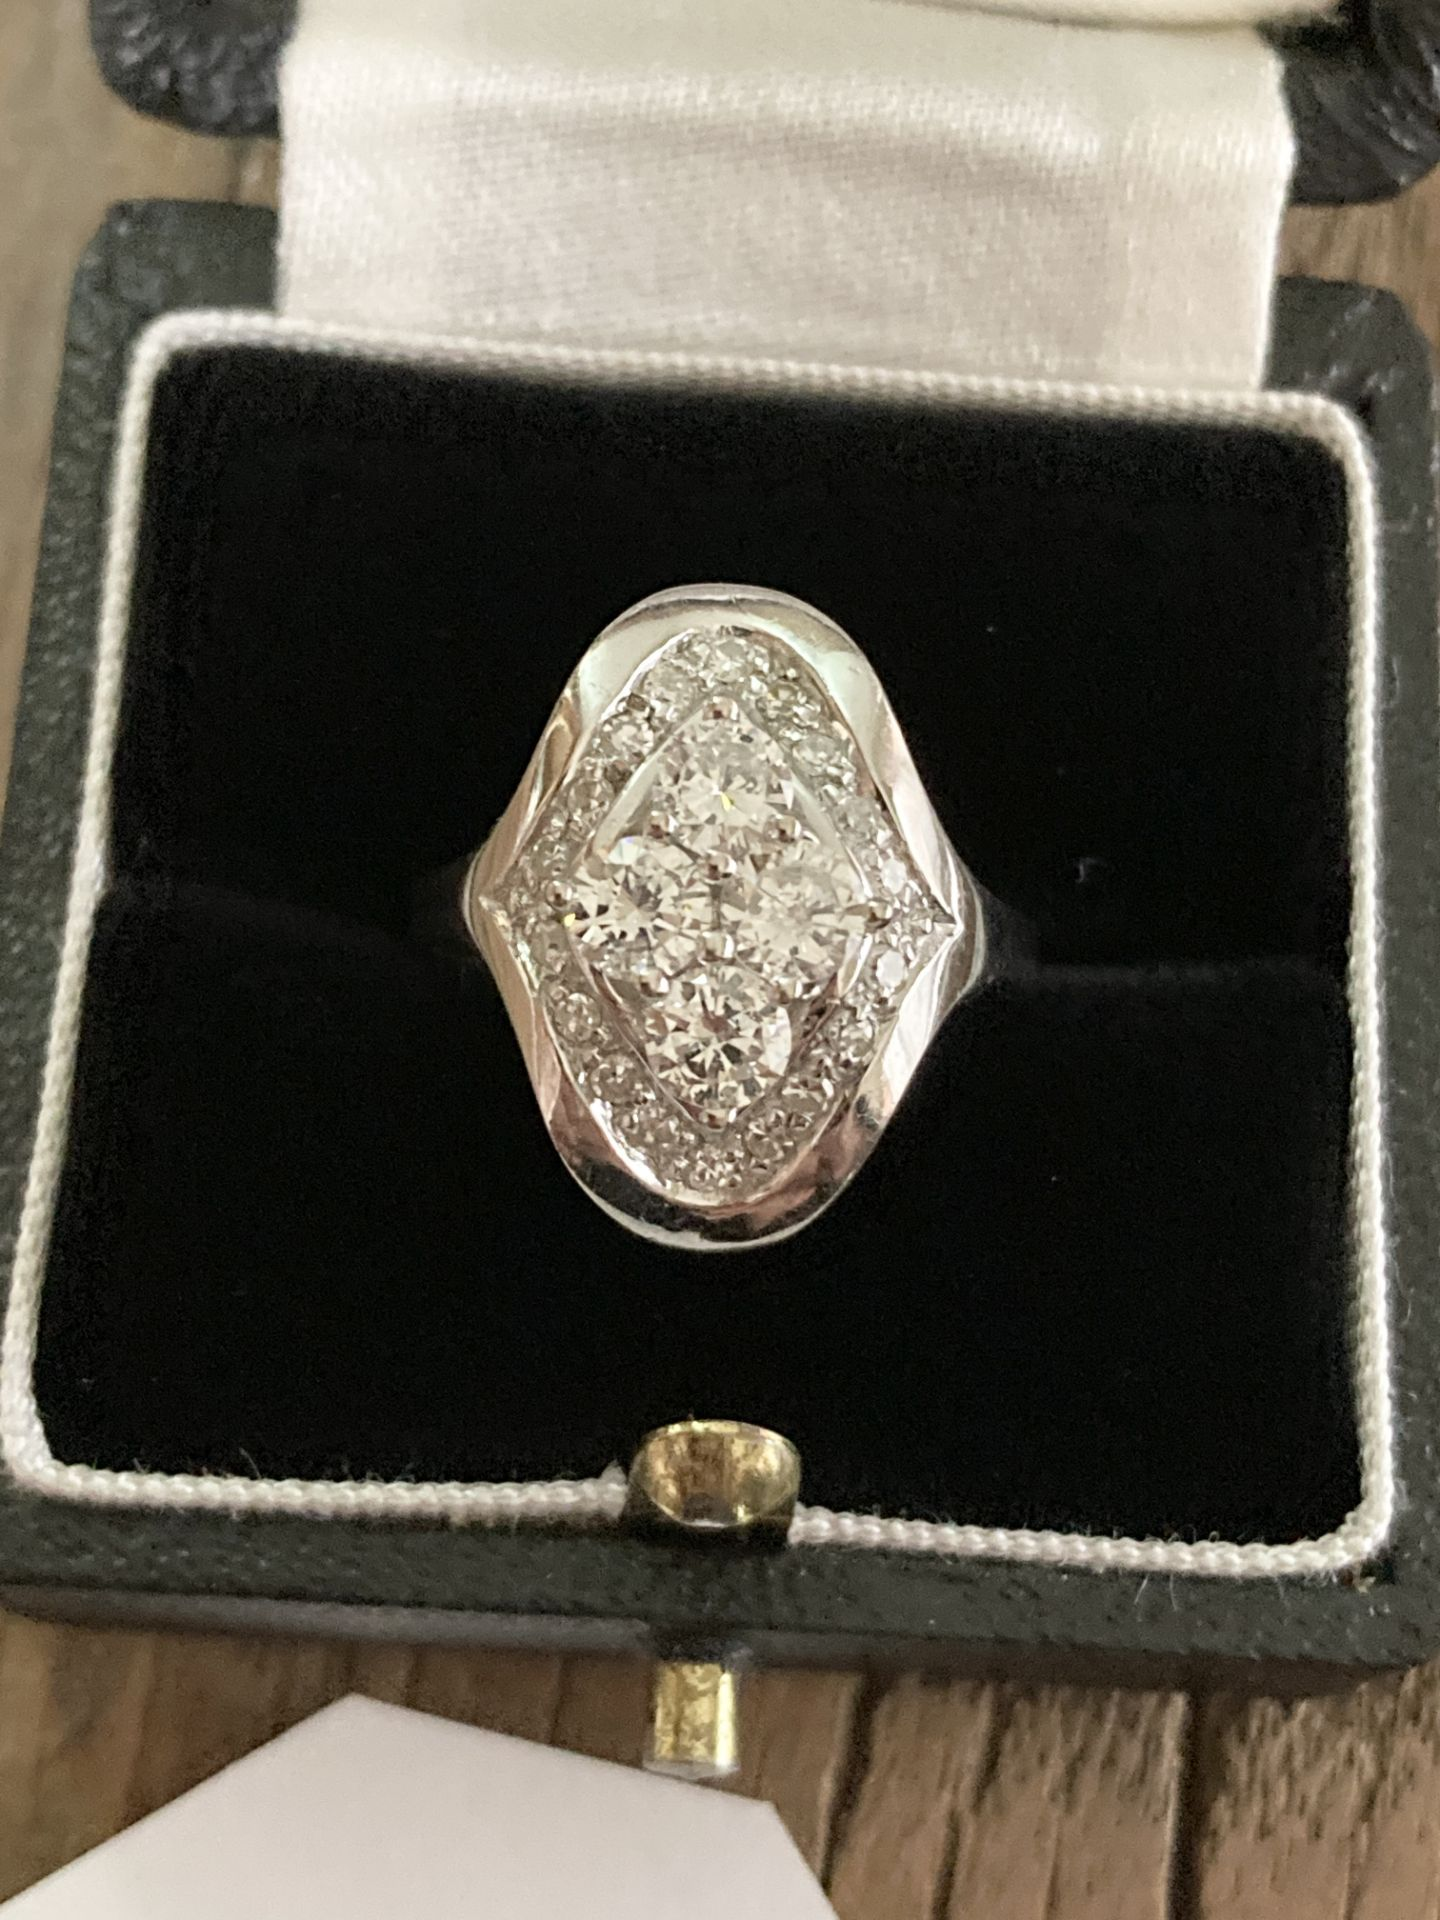 1CT DIAMOND RING IN 14CT WHITE GOLD - SIZE: O 1/2 / WEIGHT: 7.4G